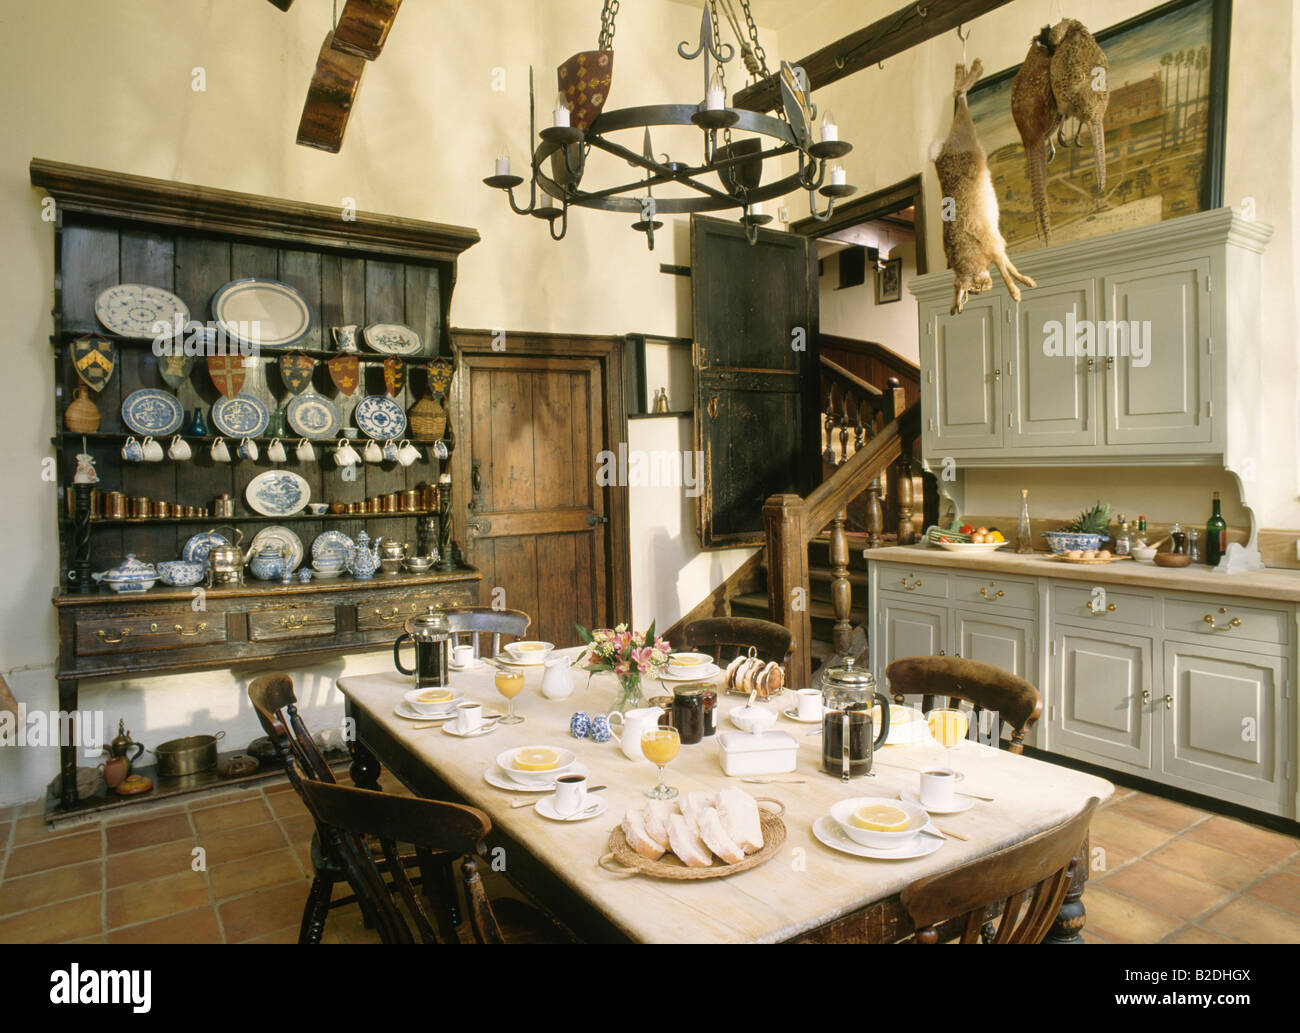 Table Set For Breakfast In Large Old Fashioned Kitchen